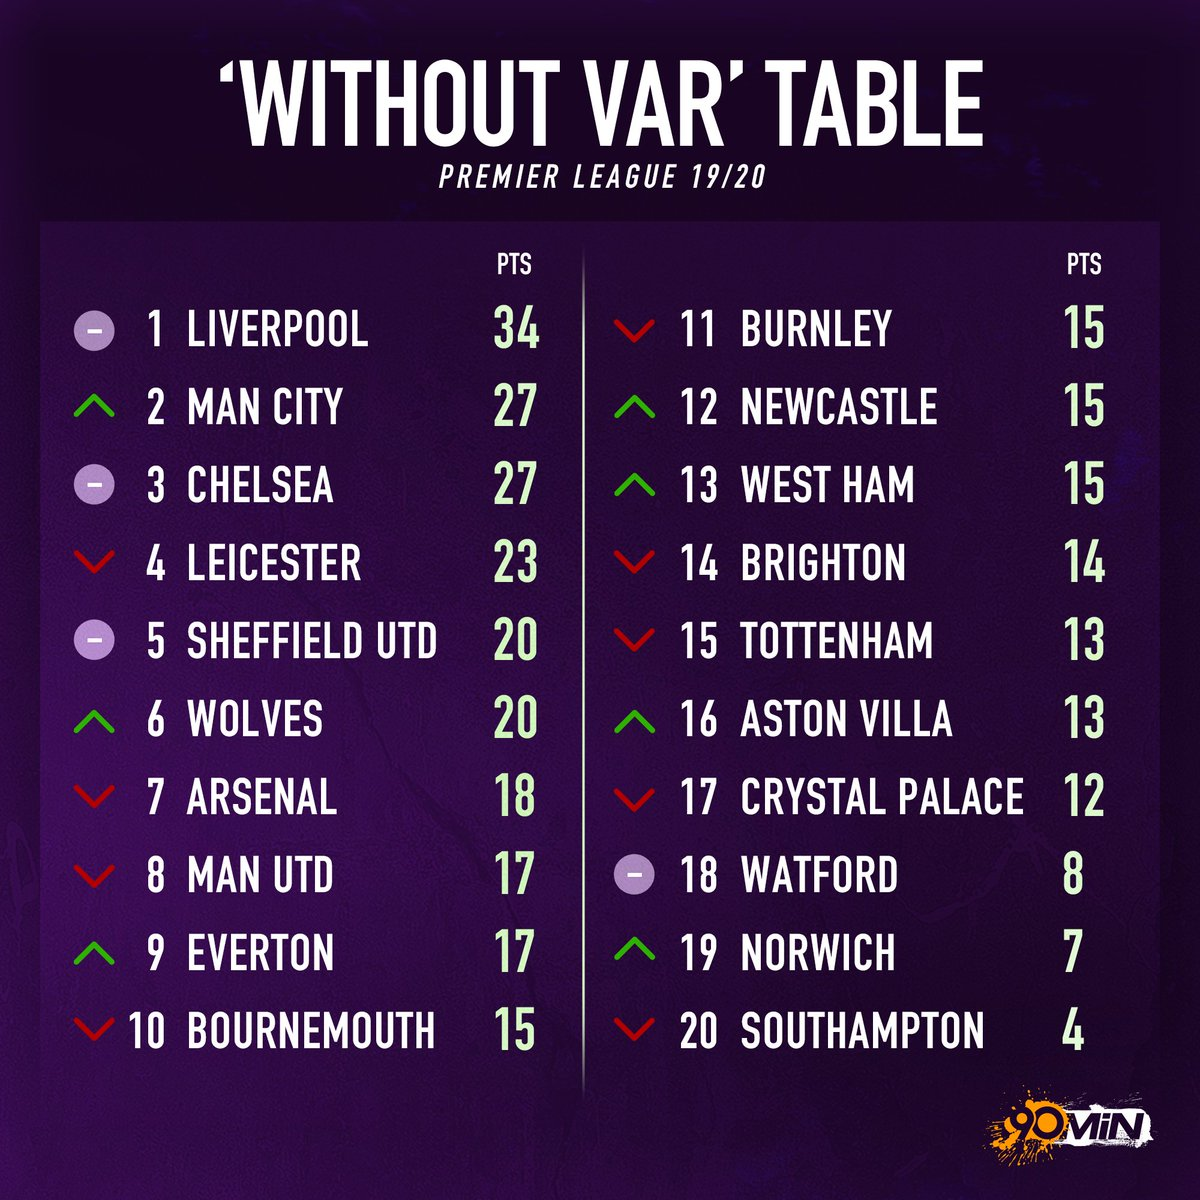 At least Man City would be a little closer to Liverpool if VAR didn't exist...<br>http://pic.twitter.com/THoMxgXVvE